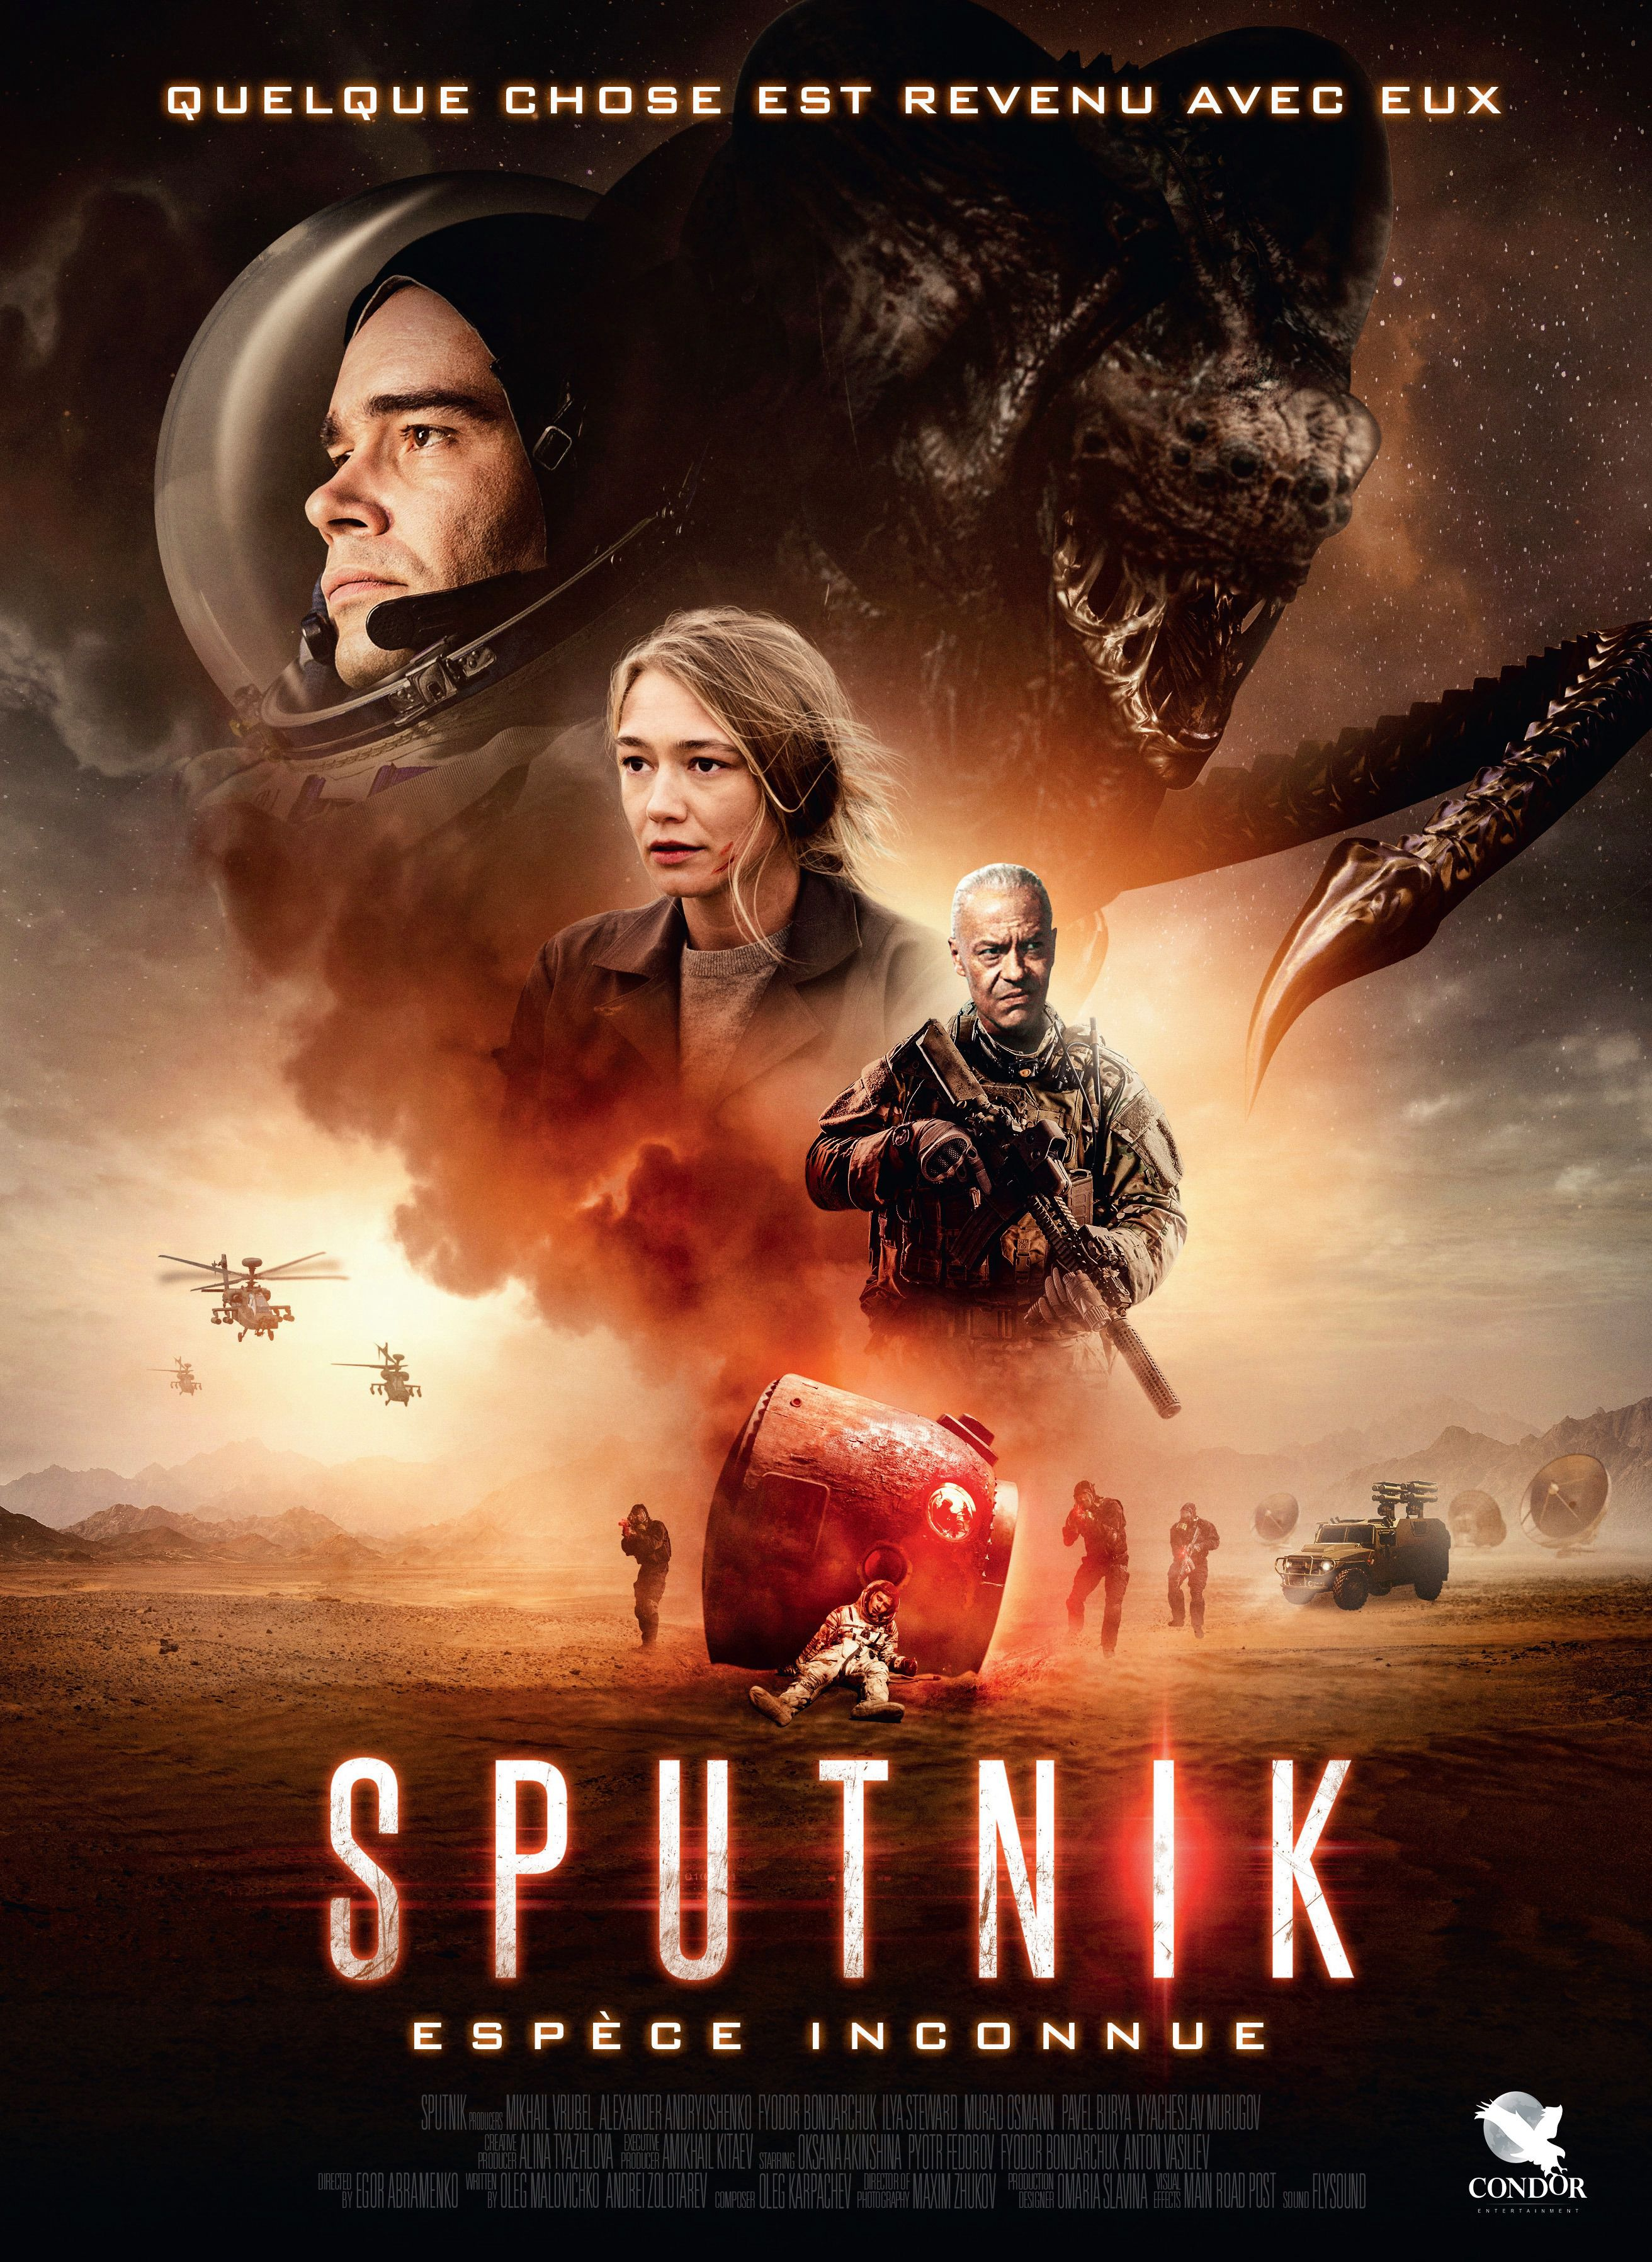 Sputnik - Film (2021) streaming VF gratuit complet